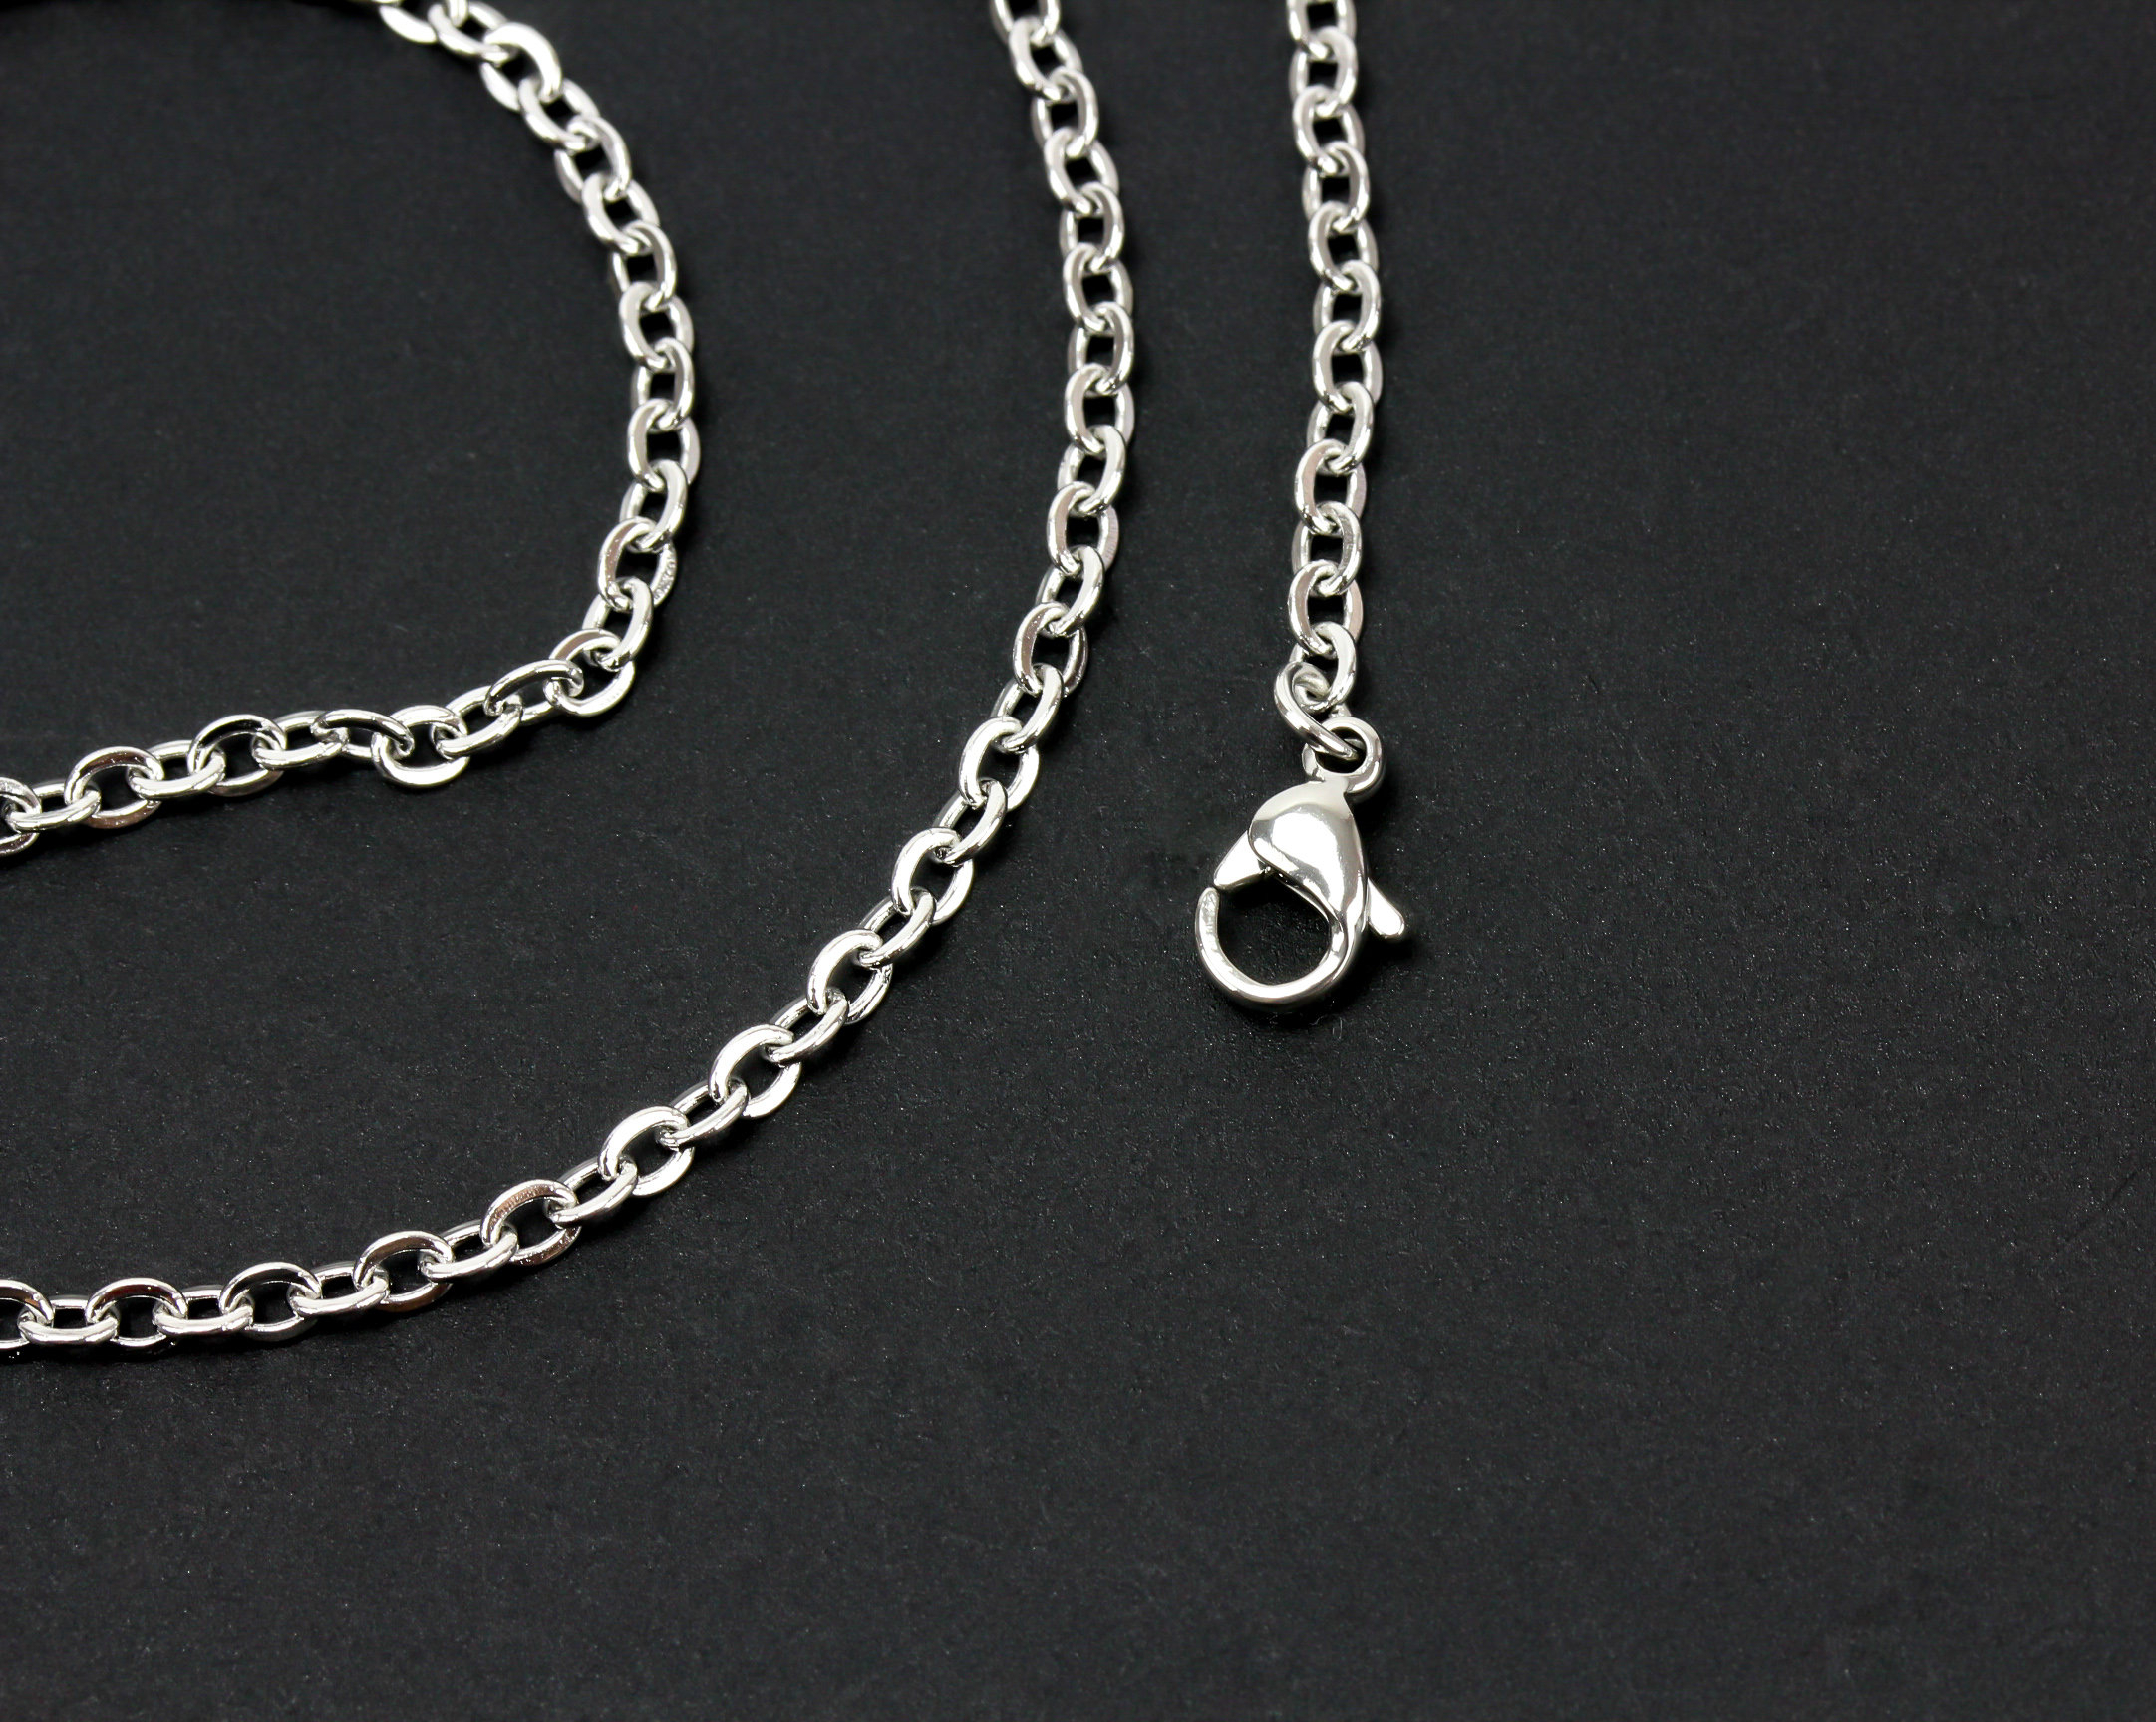 "1 Stainless Steel Link Cable Chain Necklace 45Cm (17 5/8"") Long With Lobster Claw Clasp Chain Link Size 3X (View 10 of 25)"